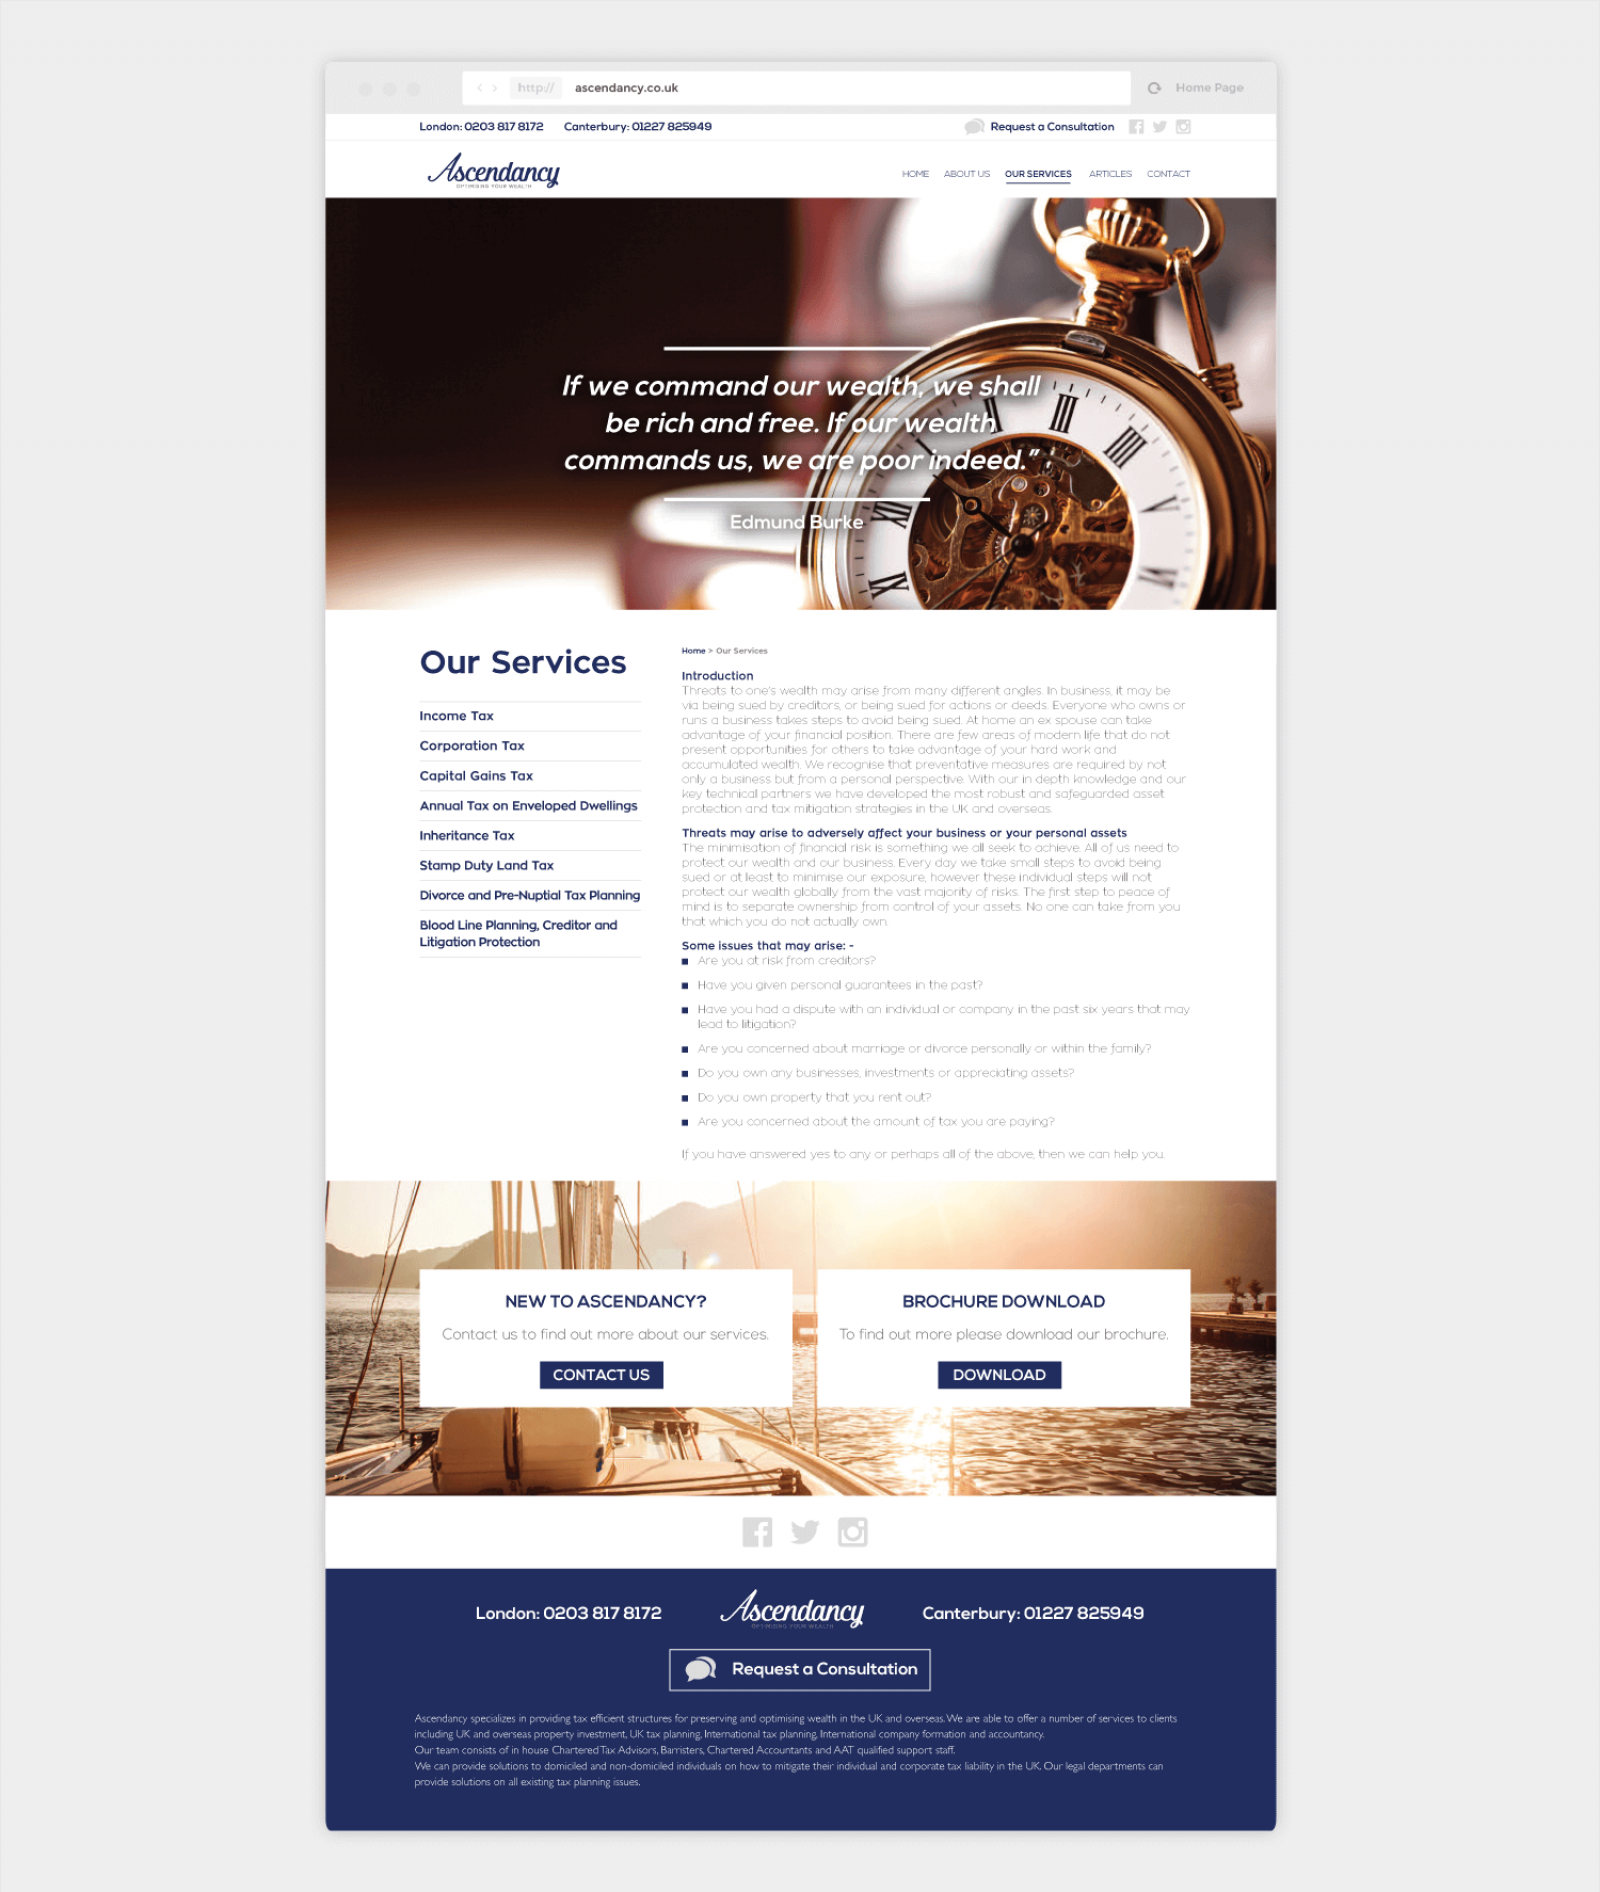 Ascendancy-website-3-design-agency-graphic-design-canterbury.png